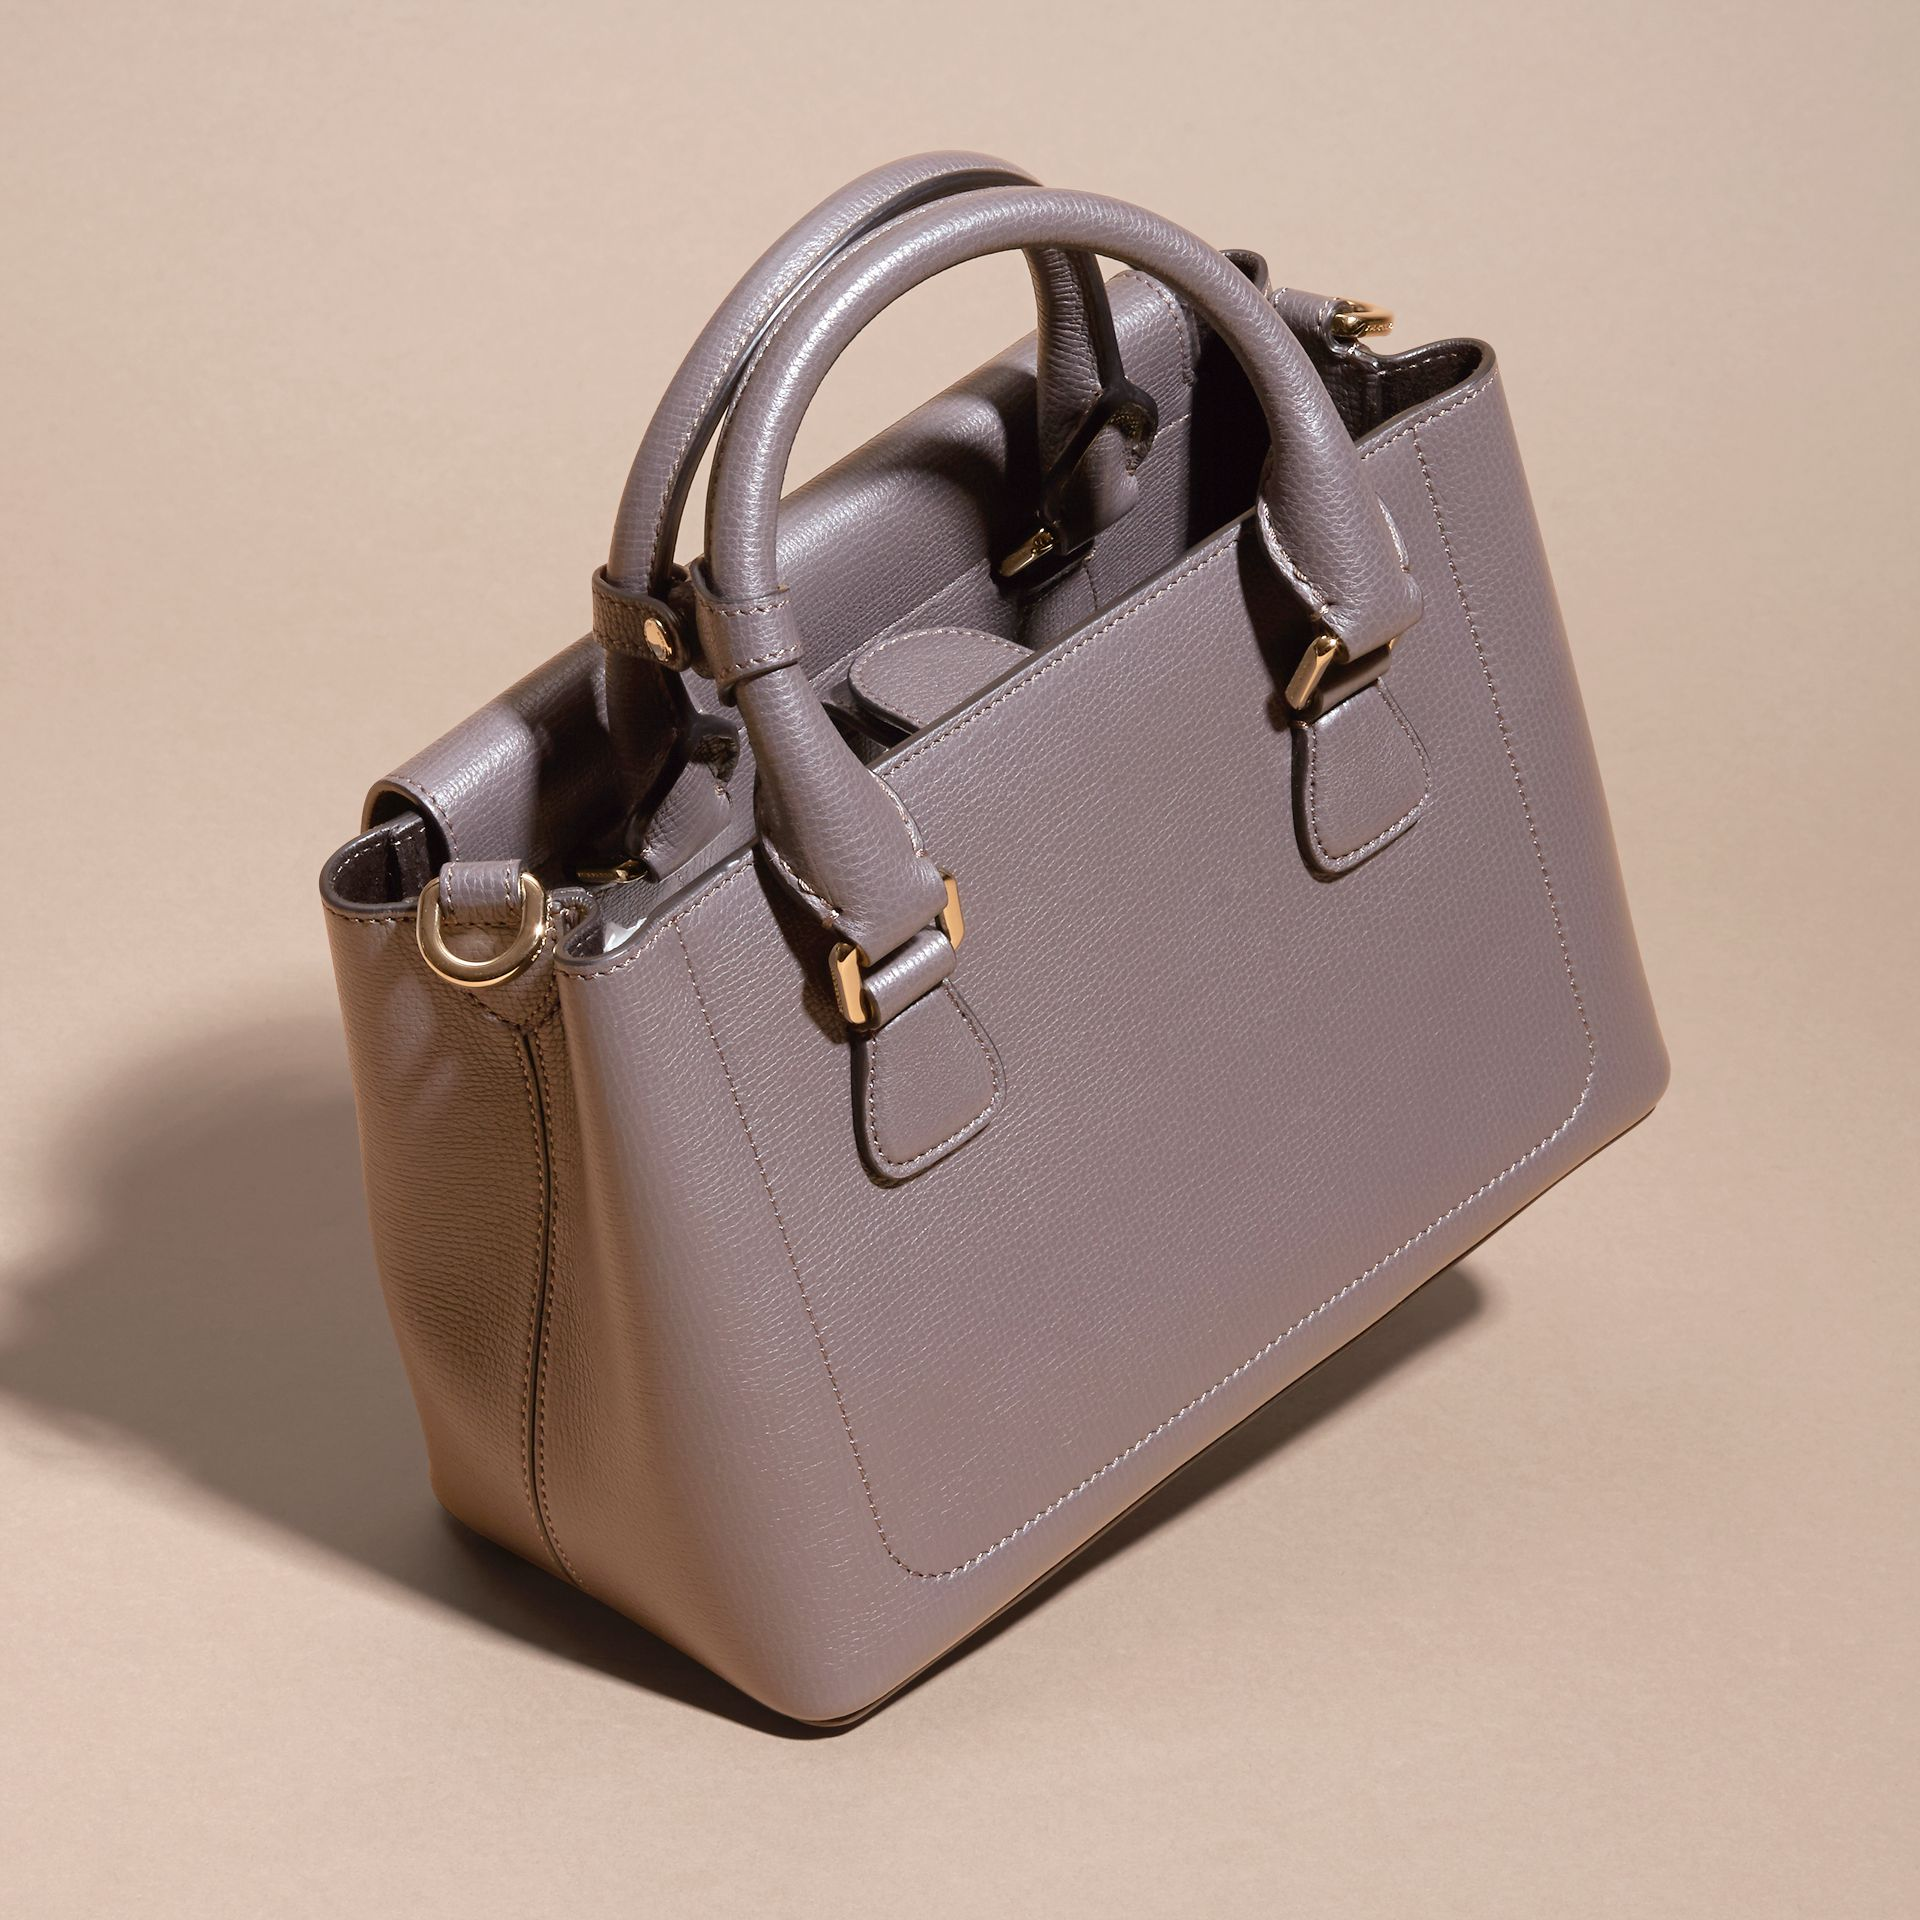 Sepia grey The Small Saddle Bag in Grainy Bonded Leather Sepia Grey - gallery image 4